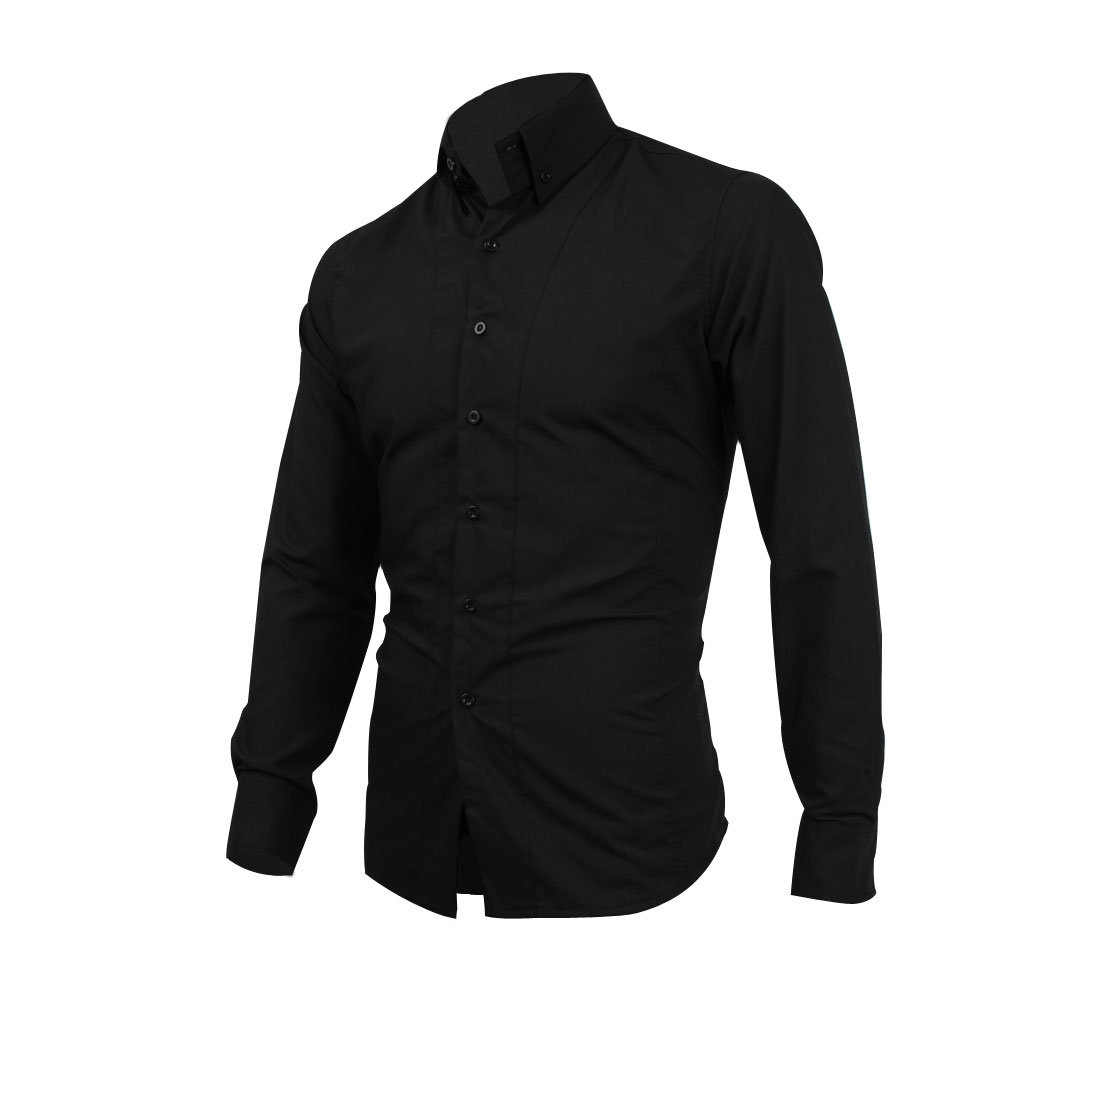 Mens Black Long Sleeves Single Breasted Autumn Casual Shirt M